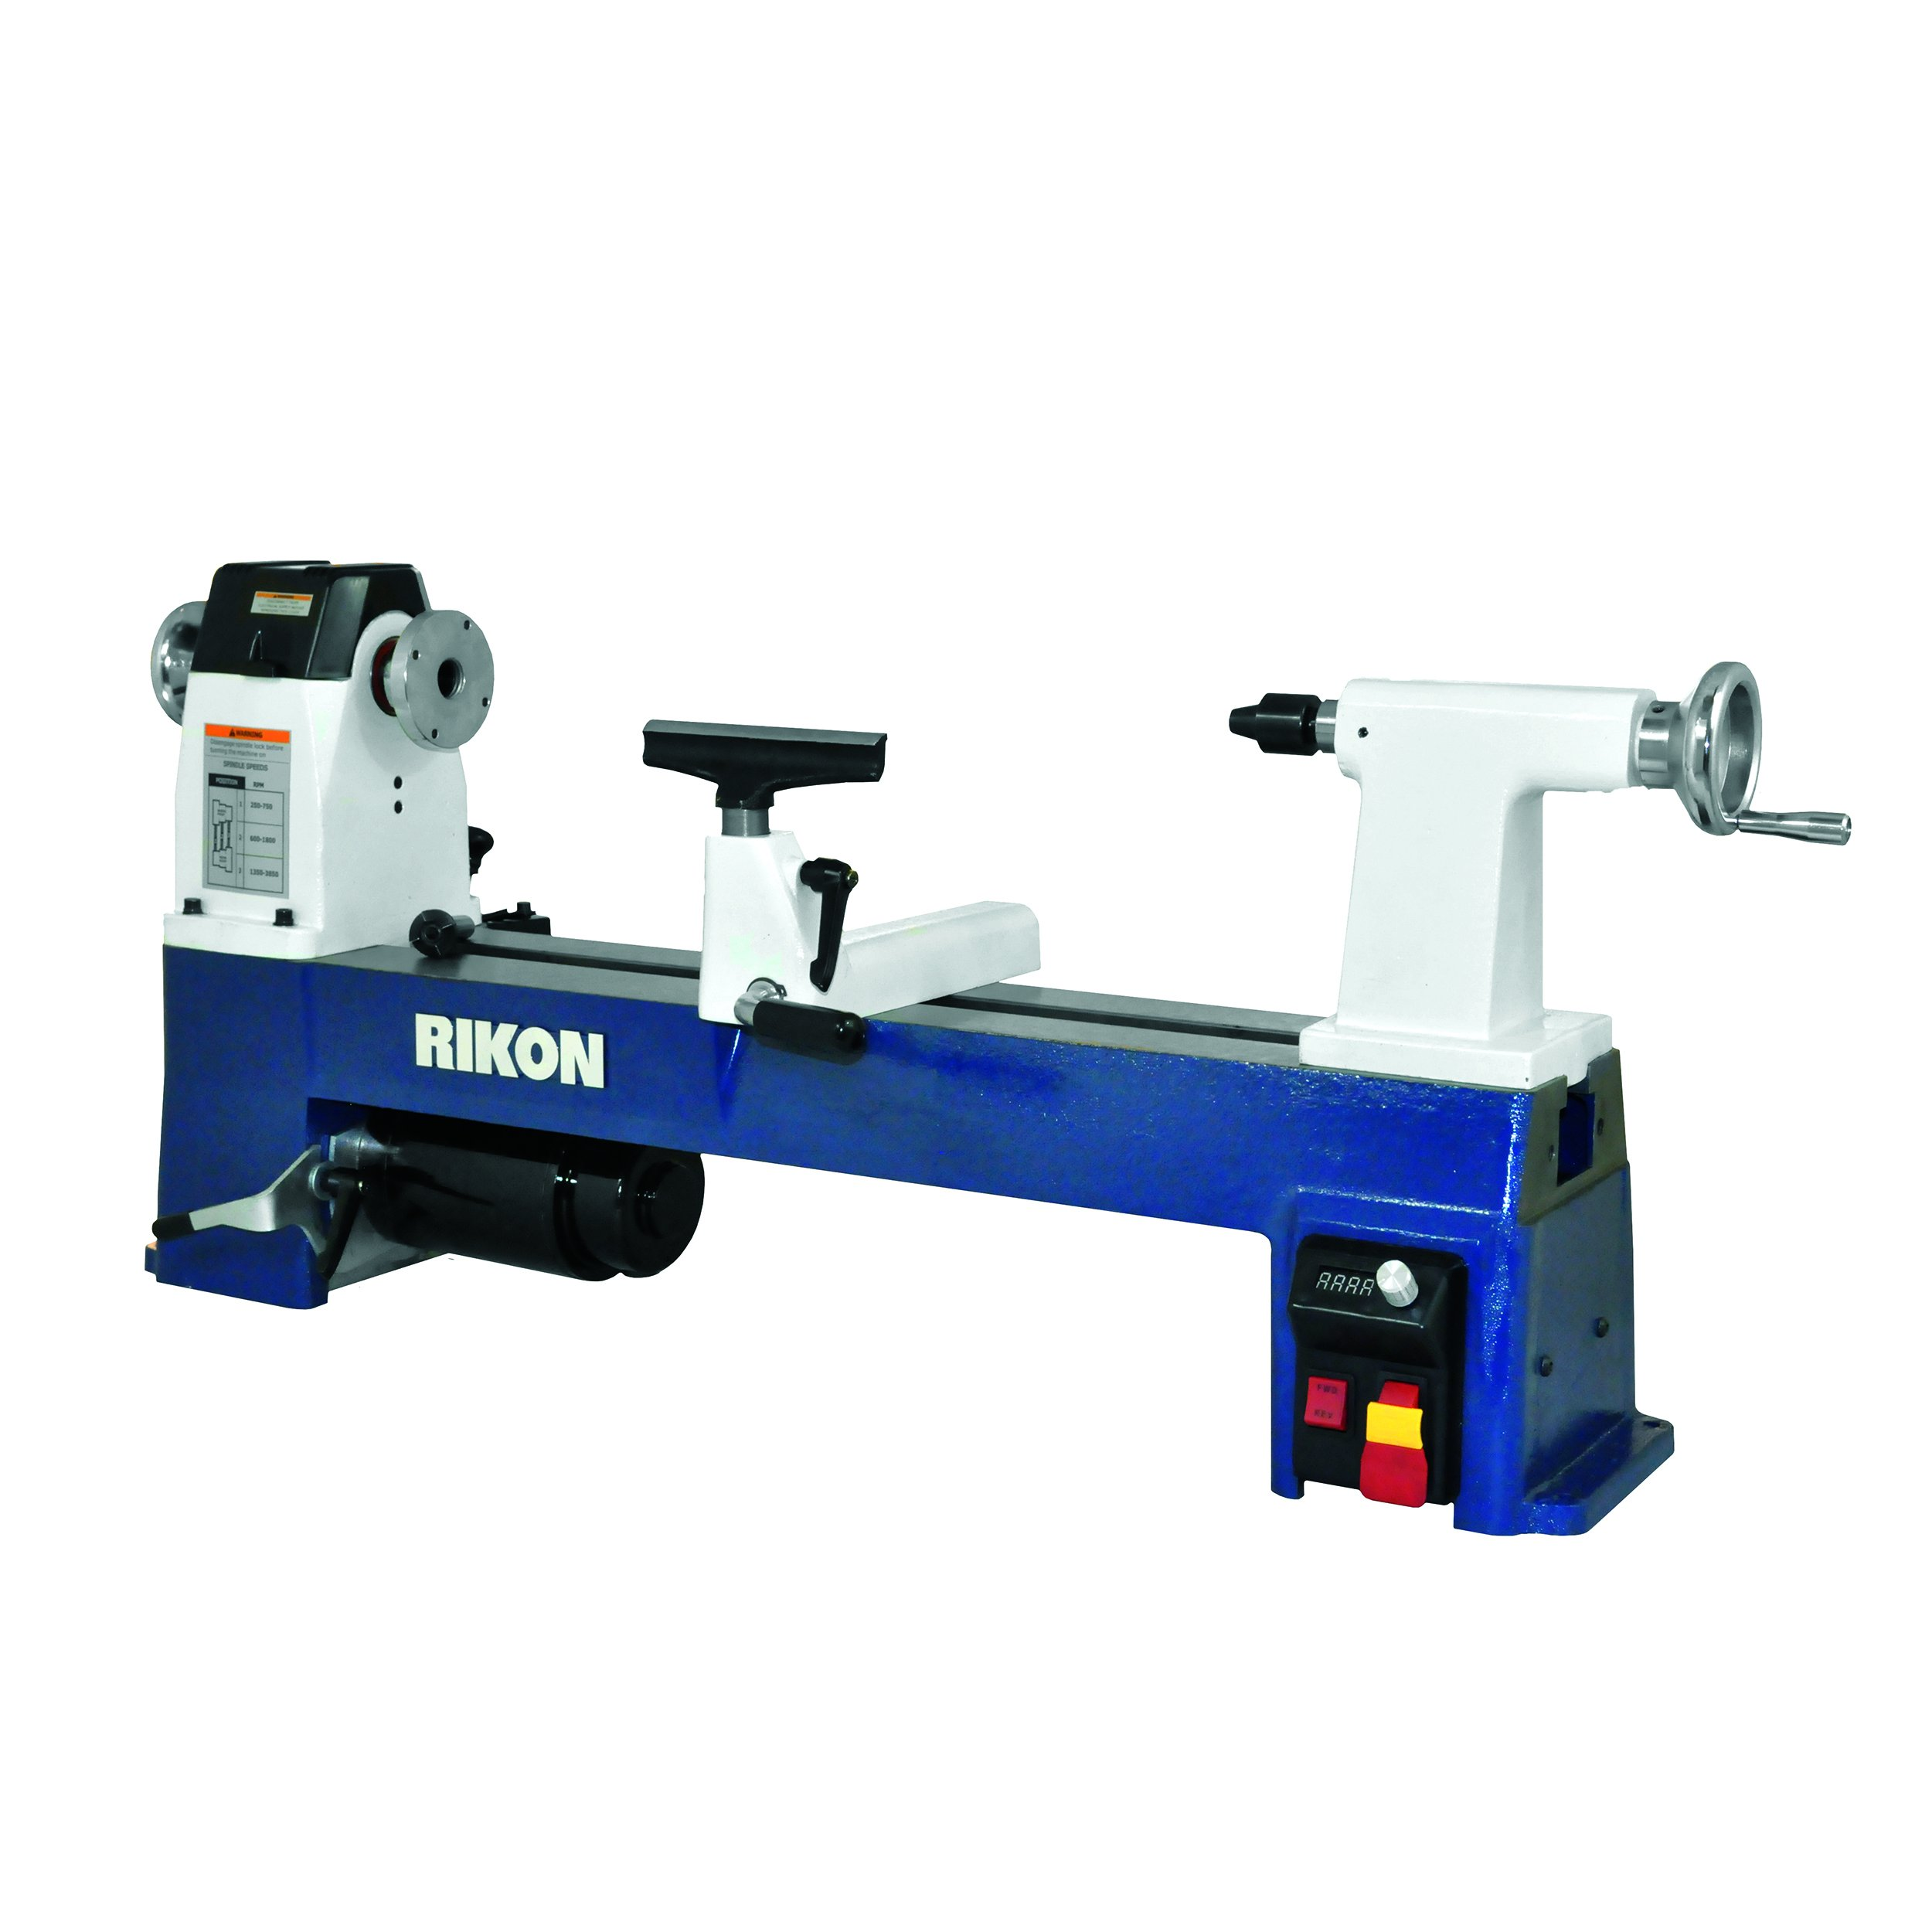 RIKON Power Tools 70-220VSR 12-1/2'' x 24'' VSR MIDI Lathe, by RIKON Power Tools